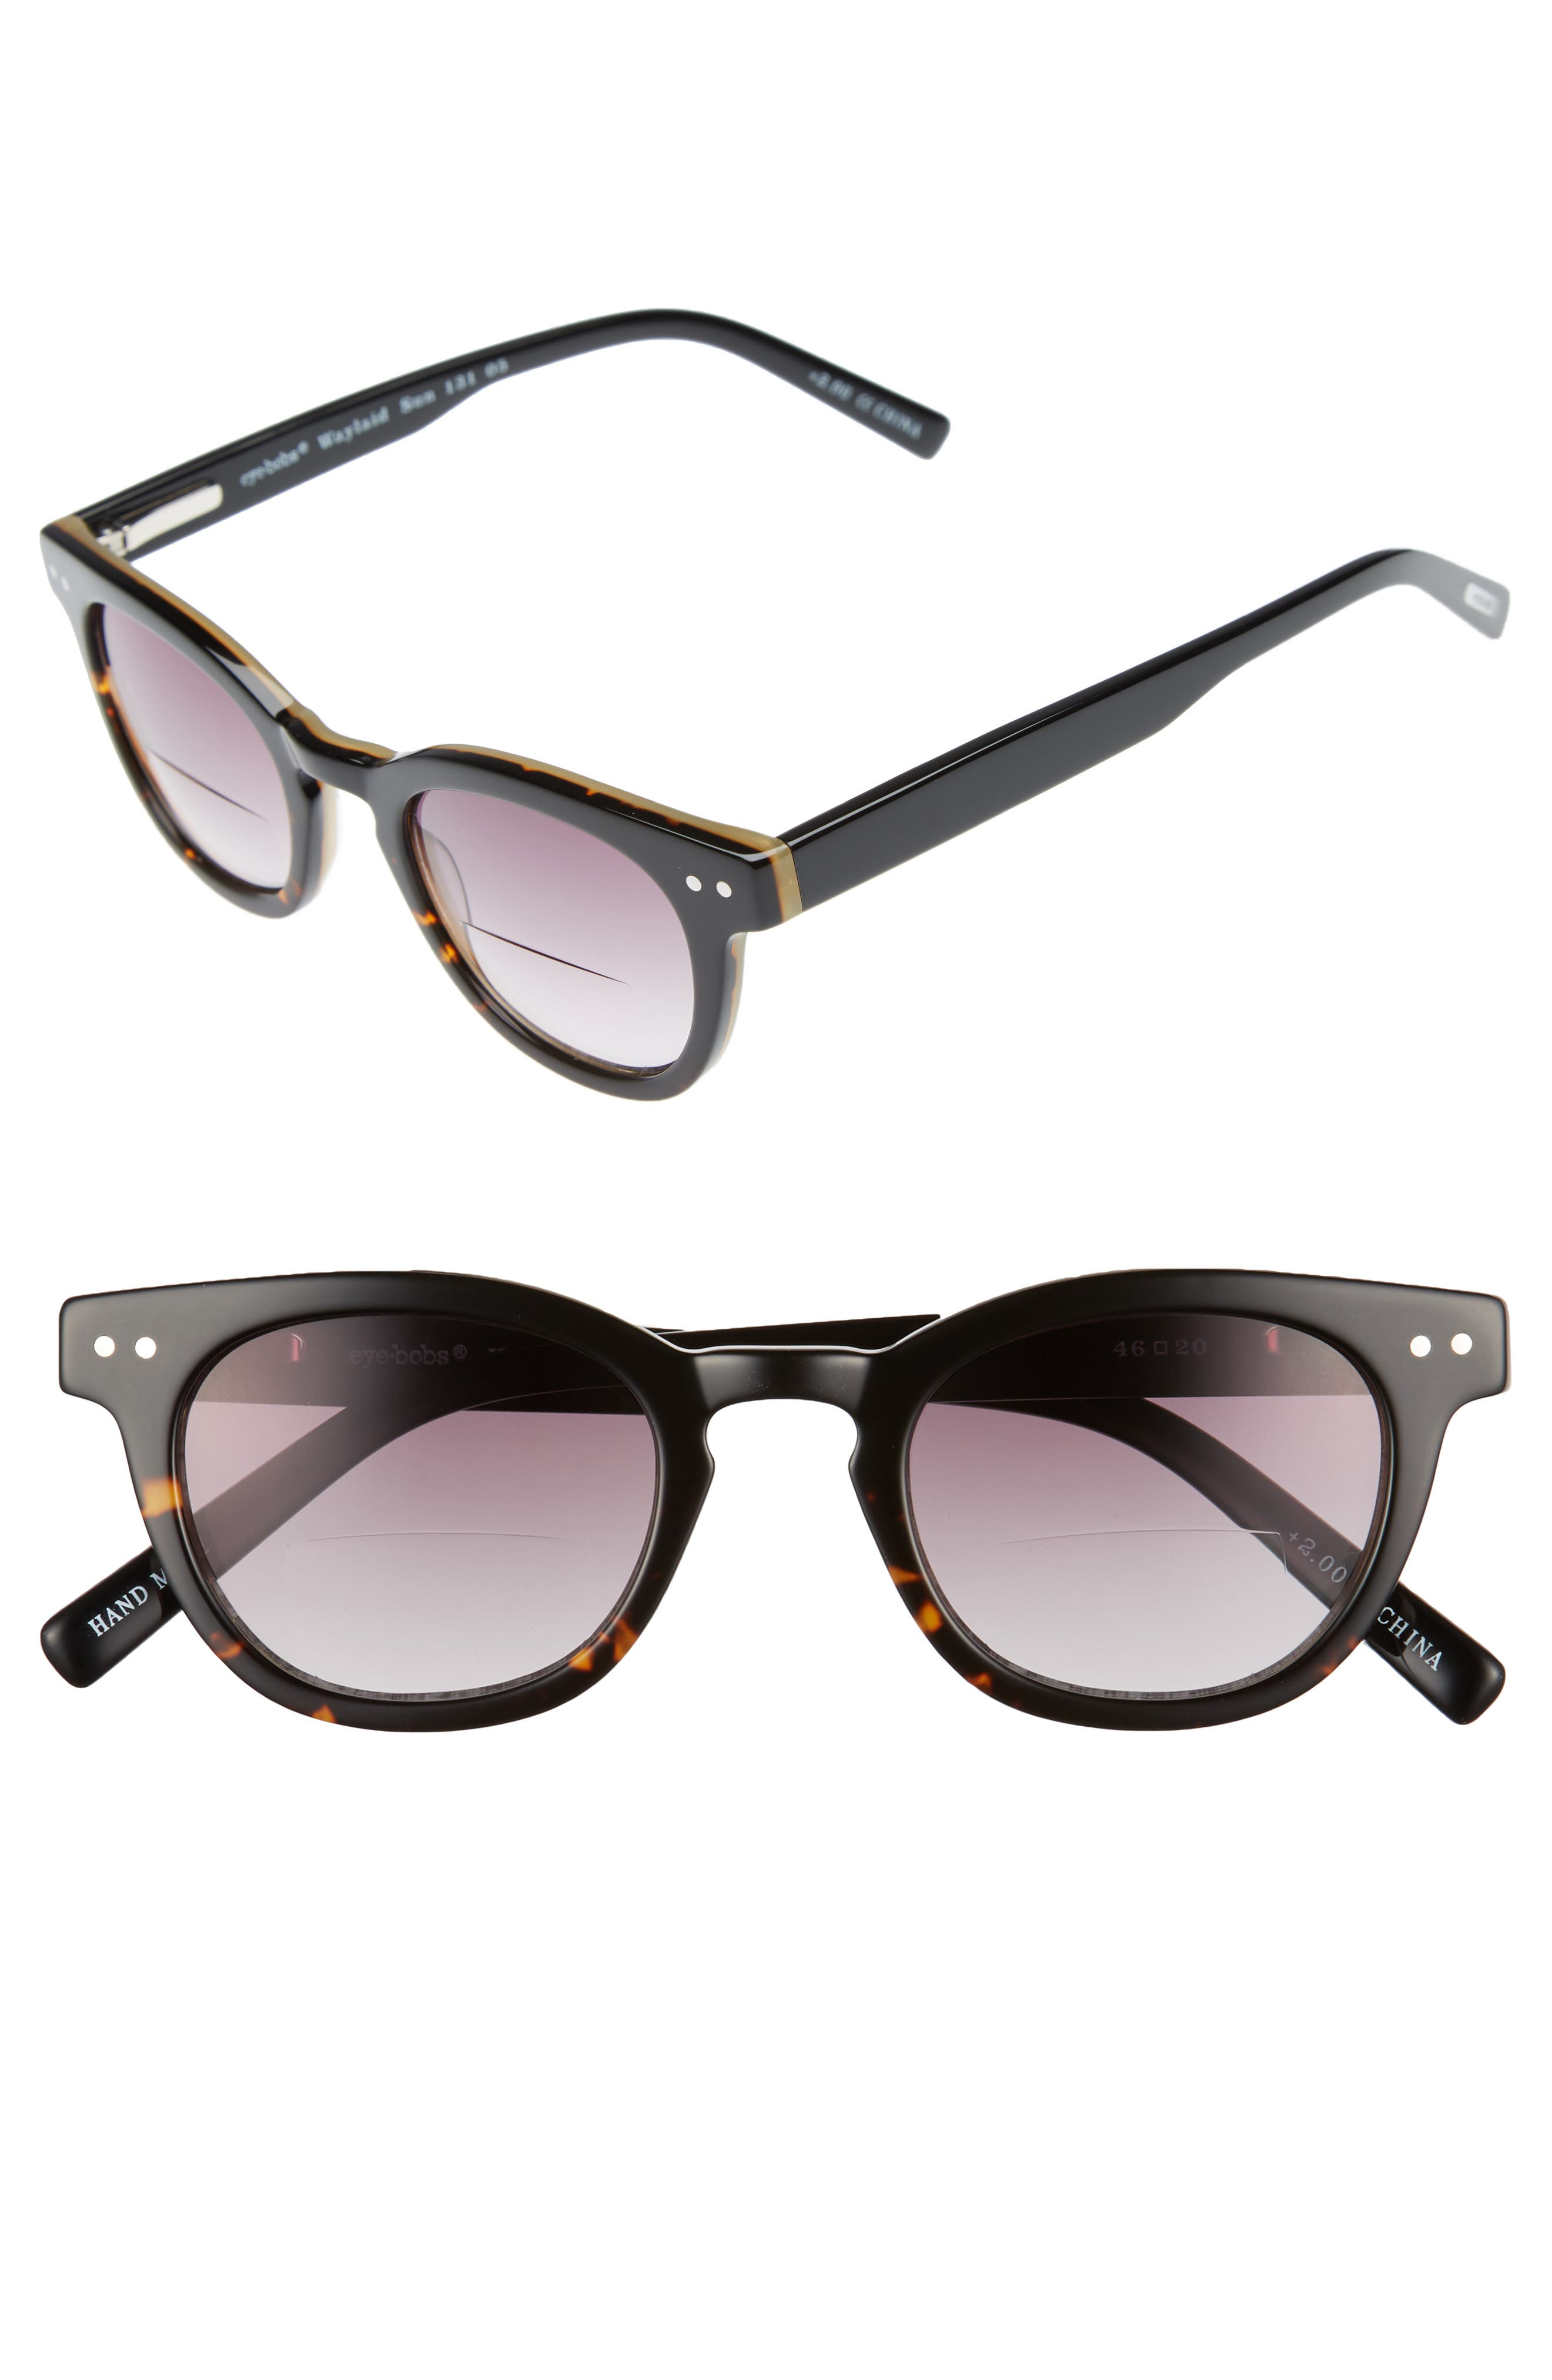 Main Image - Eyebobs Laid 46mm Reading Sunglasses